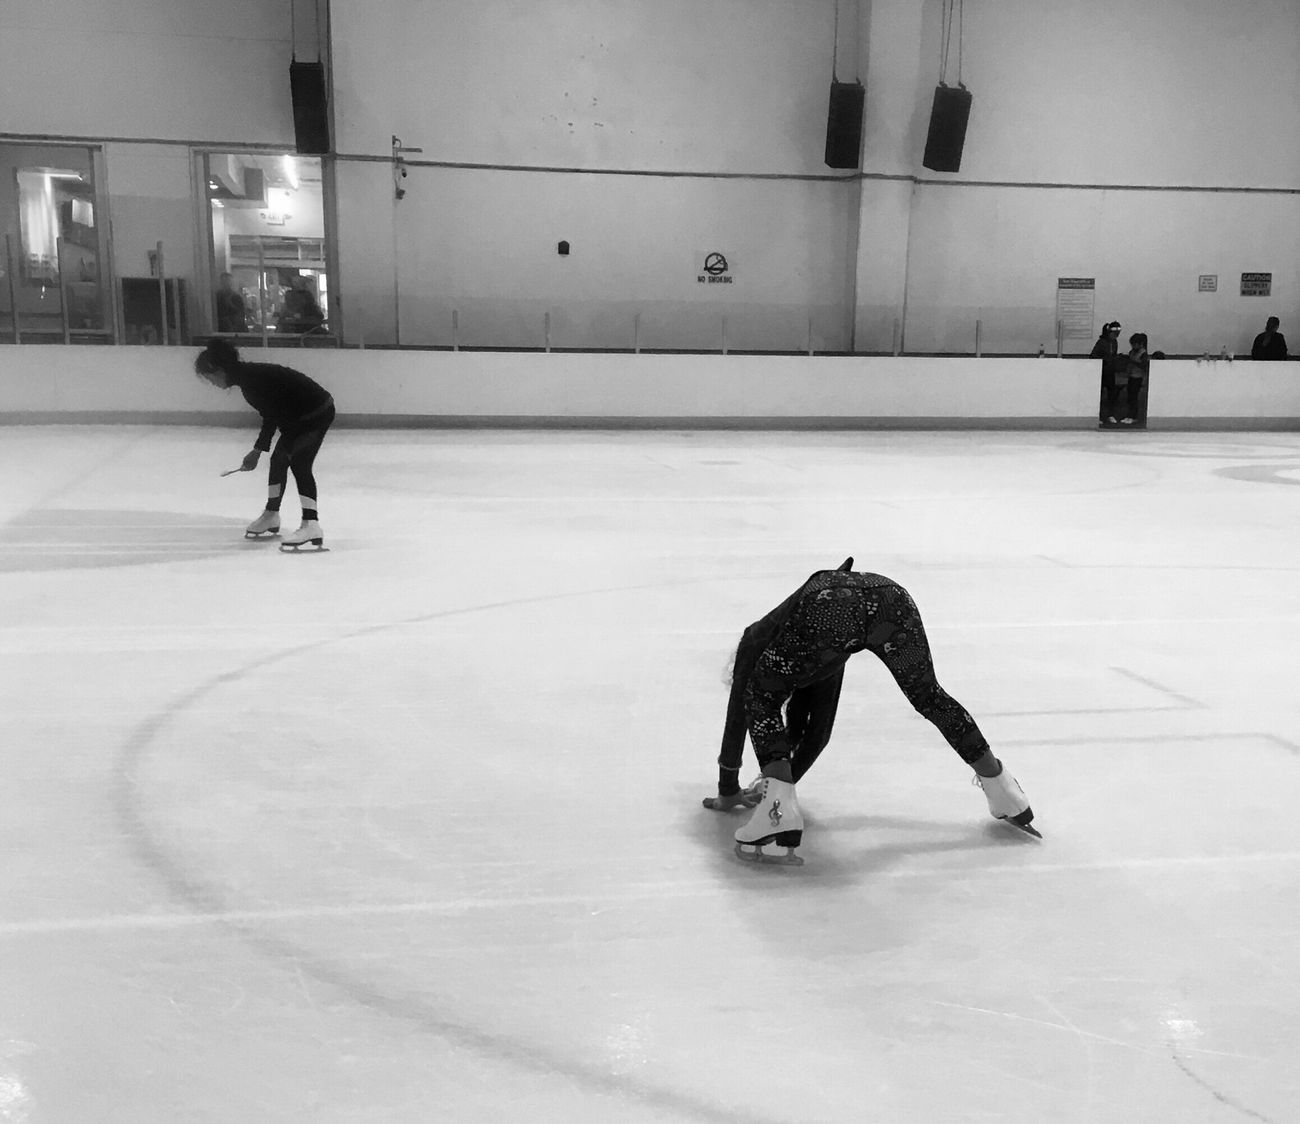 Figure Skating Chasing Ice Patching ice like the locals! 😎⛸🌴